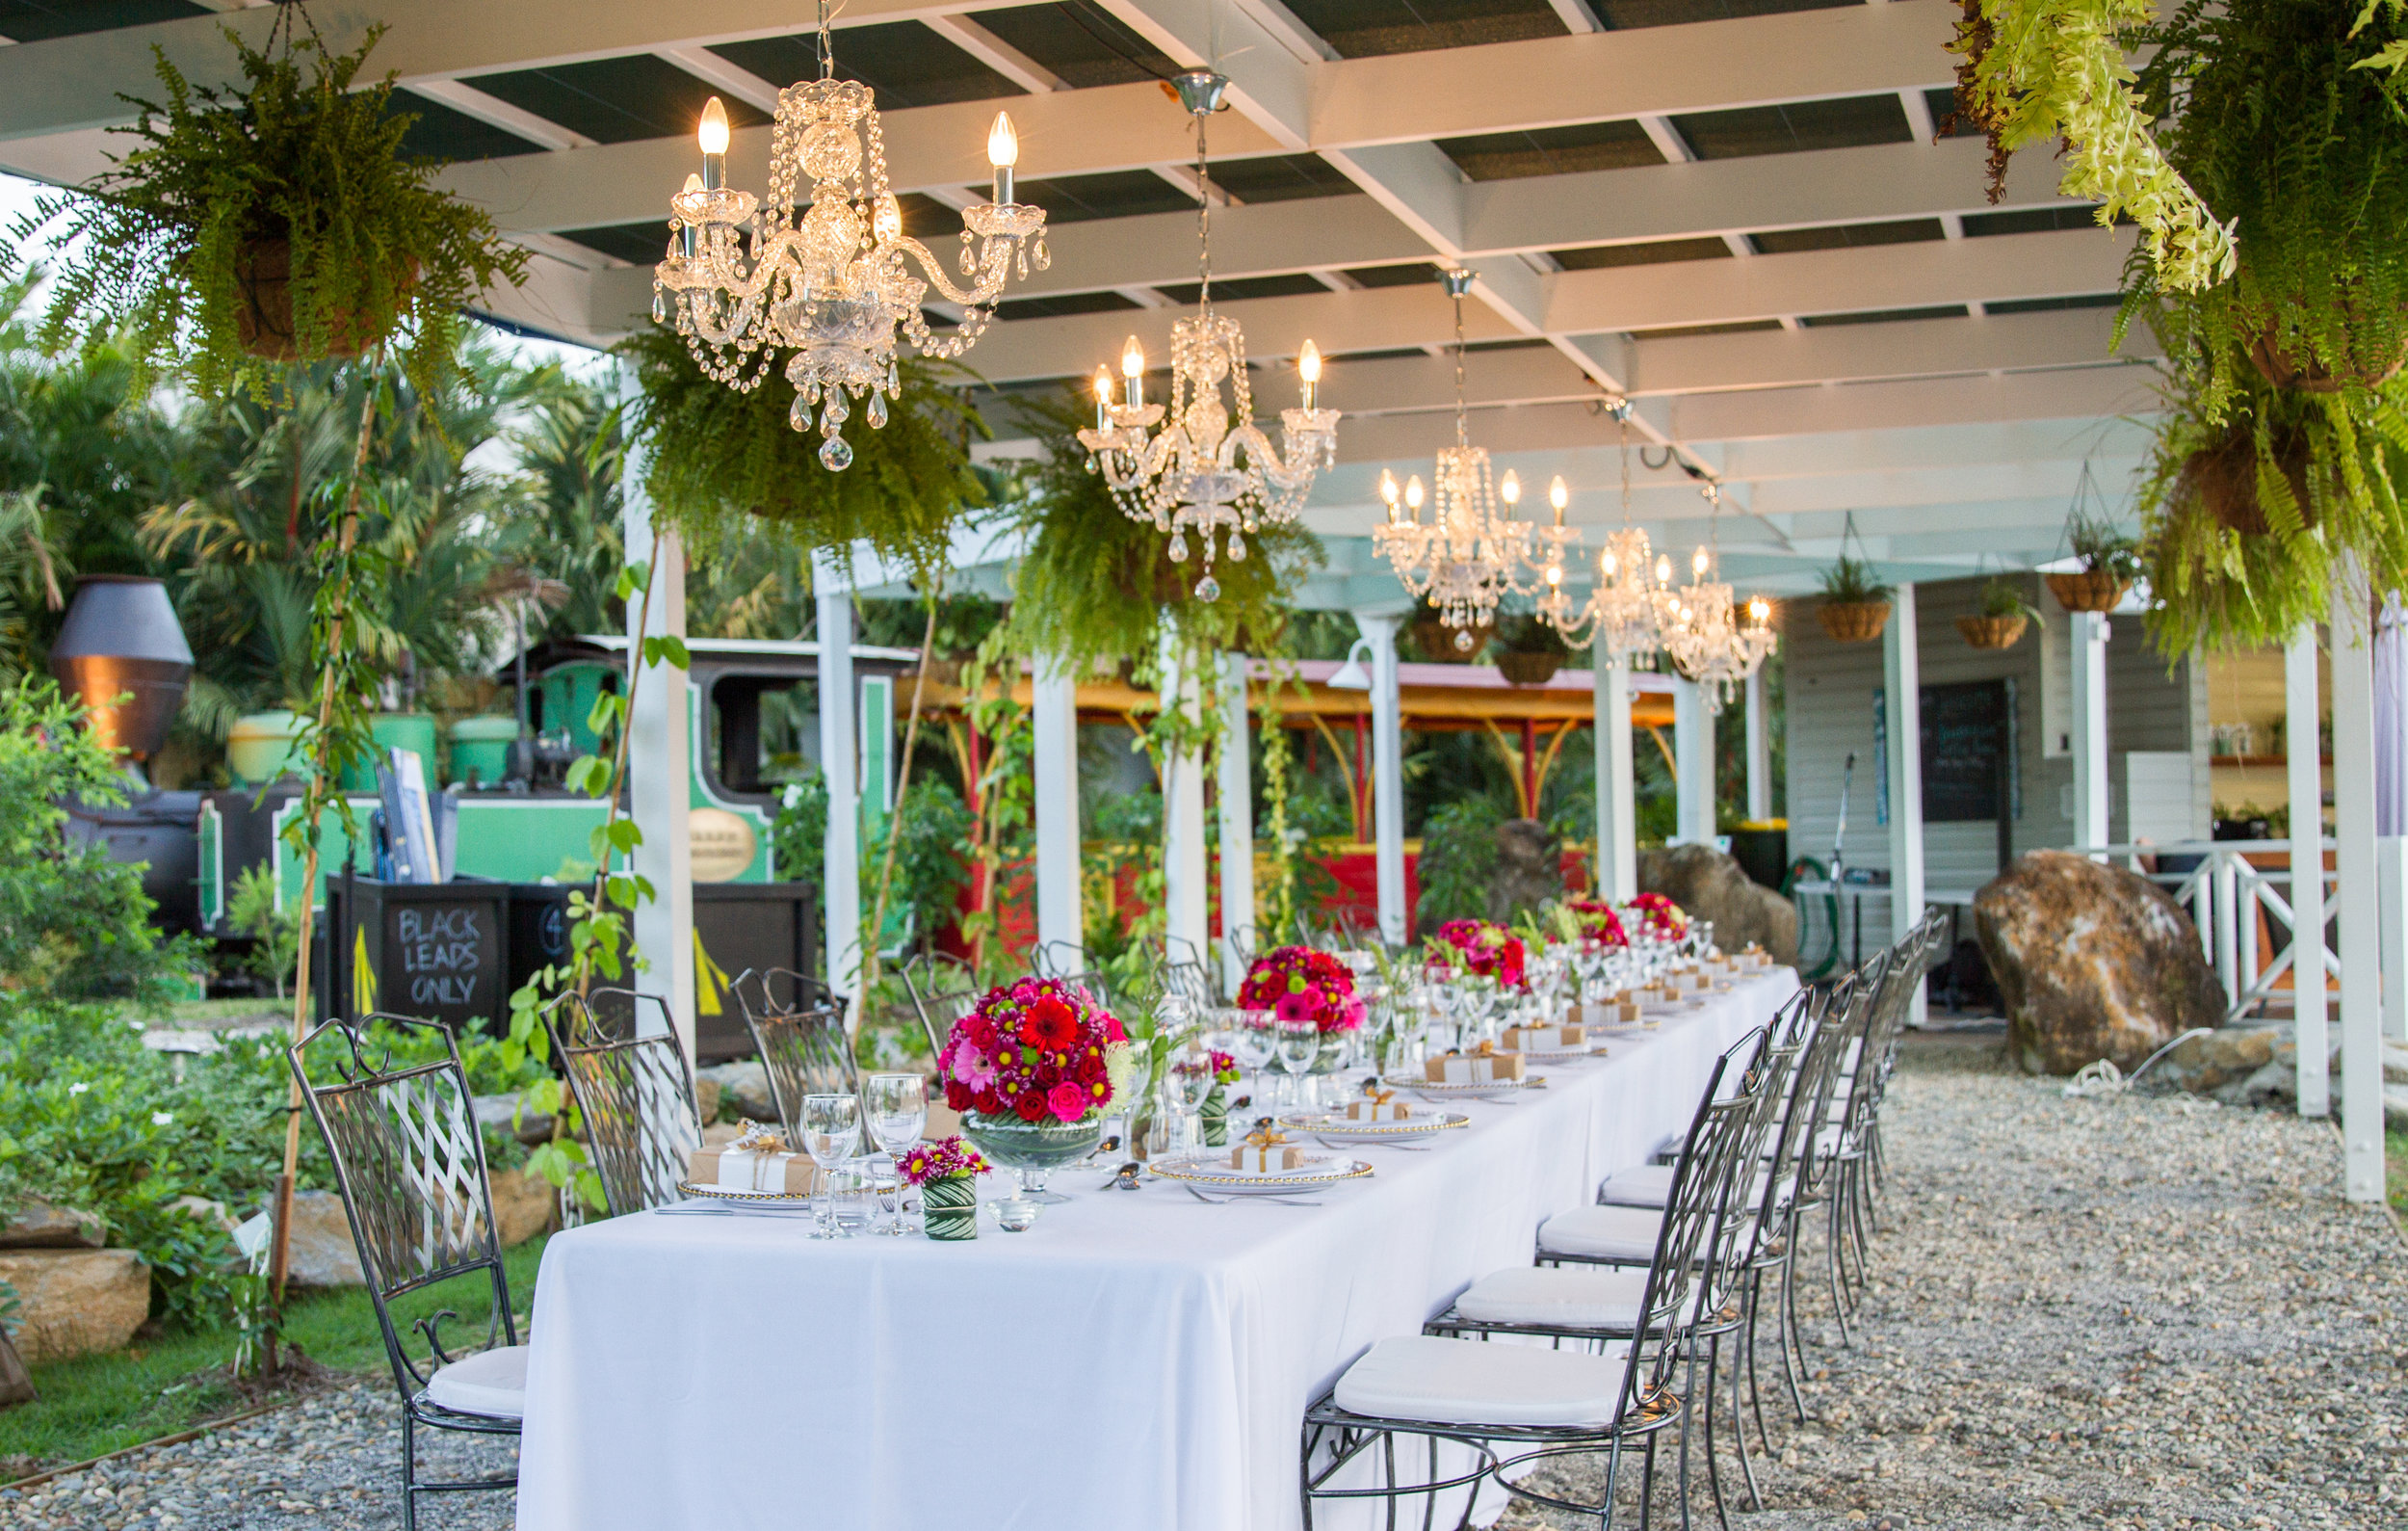 St Crispin's - This charming little train station turn cafe is home to the famous 'Balley Hooly' - Port Douglas' historic steam train. Located on a beautiful lake overlooking the Sheraton Country Club, this location is the perfect intimate setting for your next event.